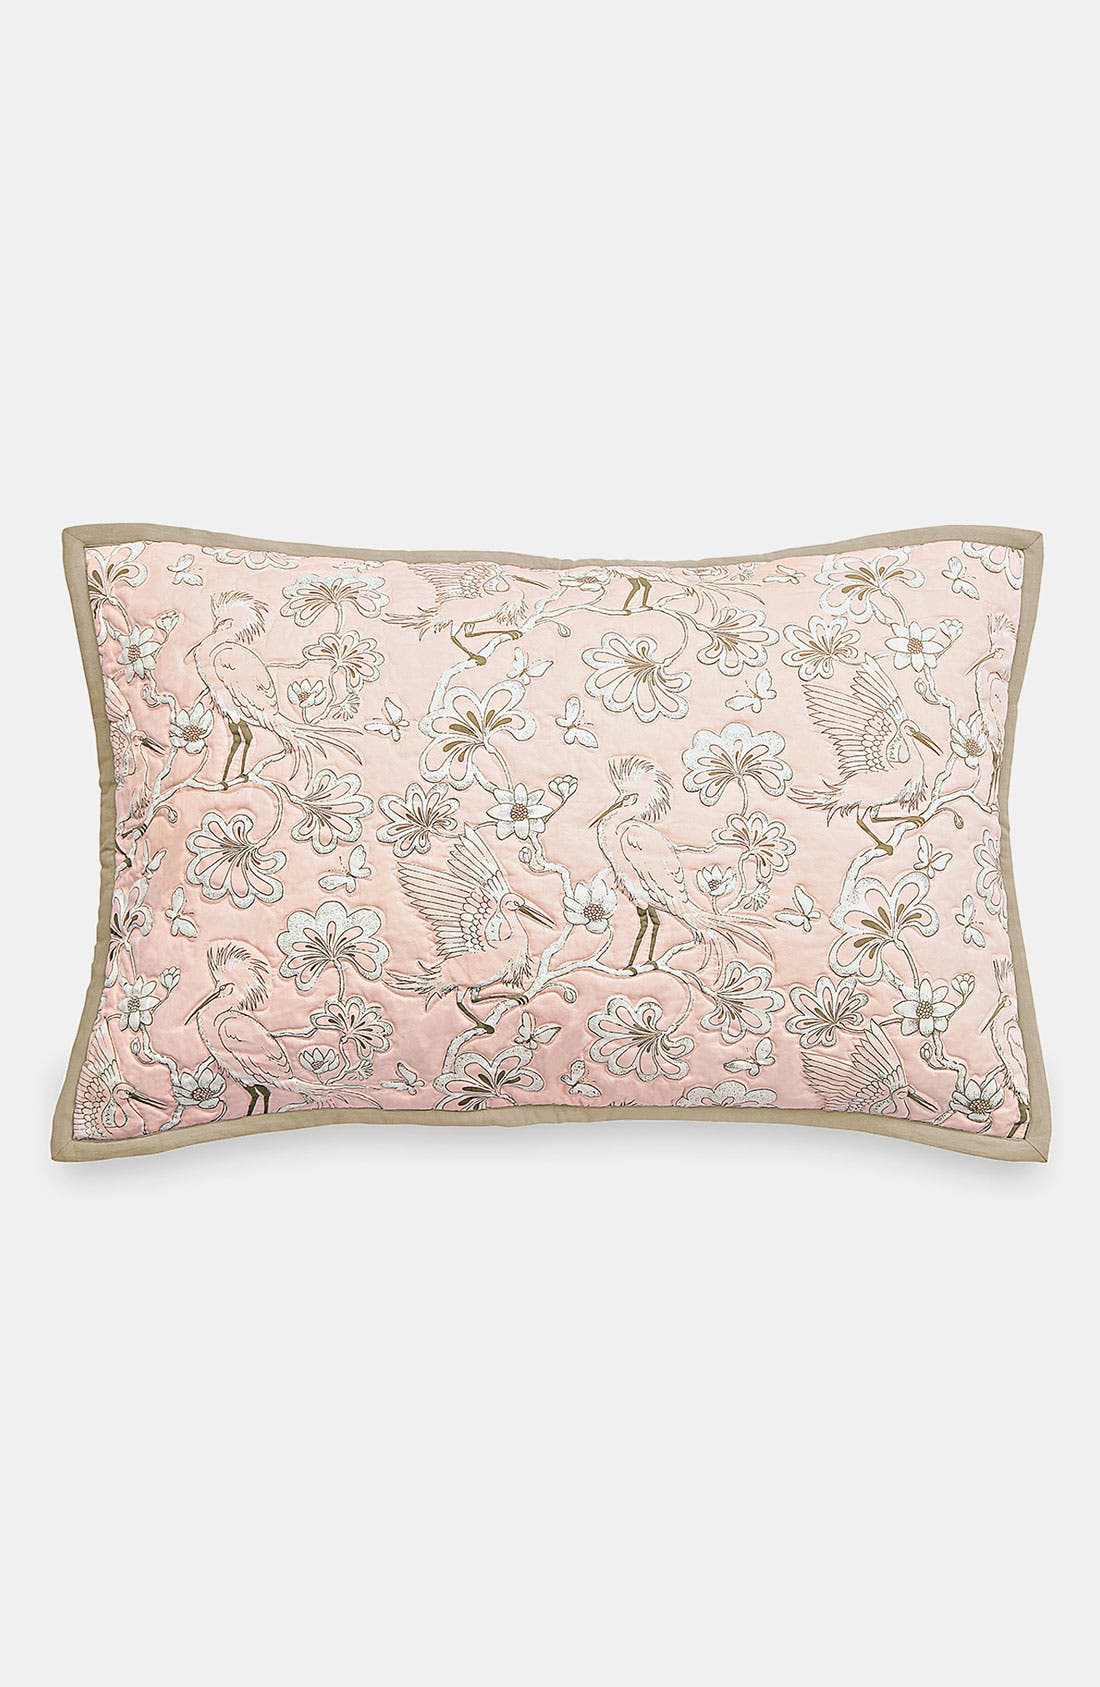 Alternate Image 1 Selected - kate spade new york 'egrets' sham